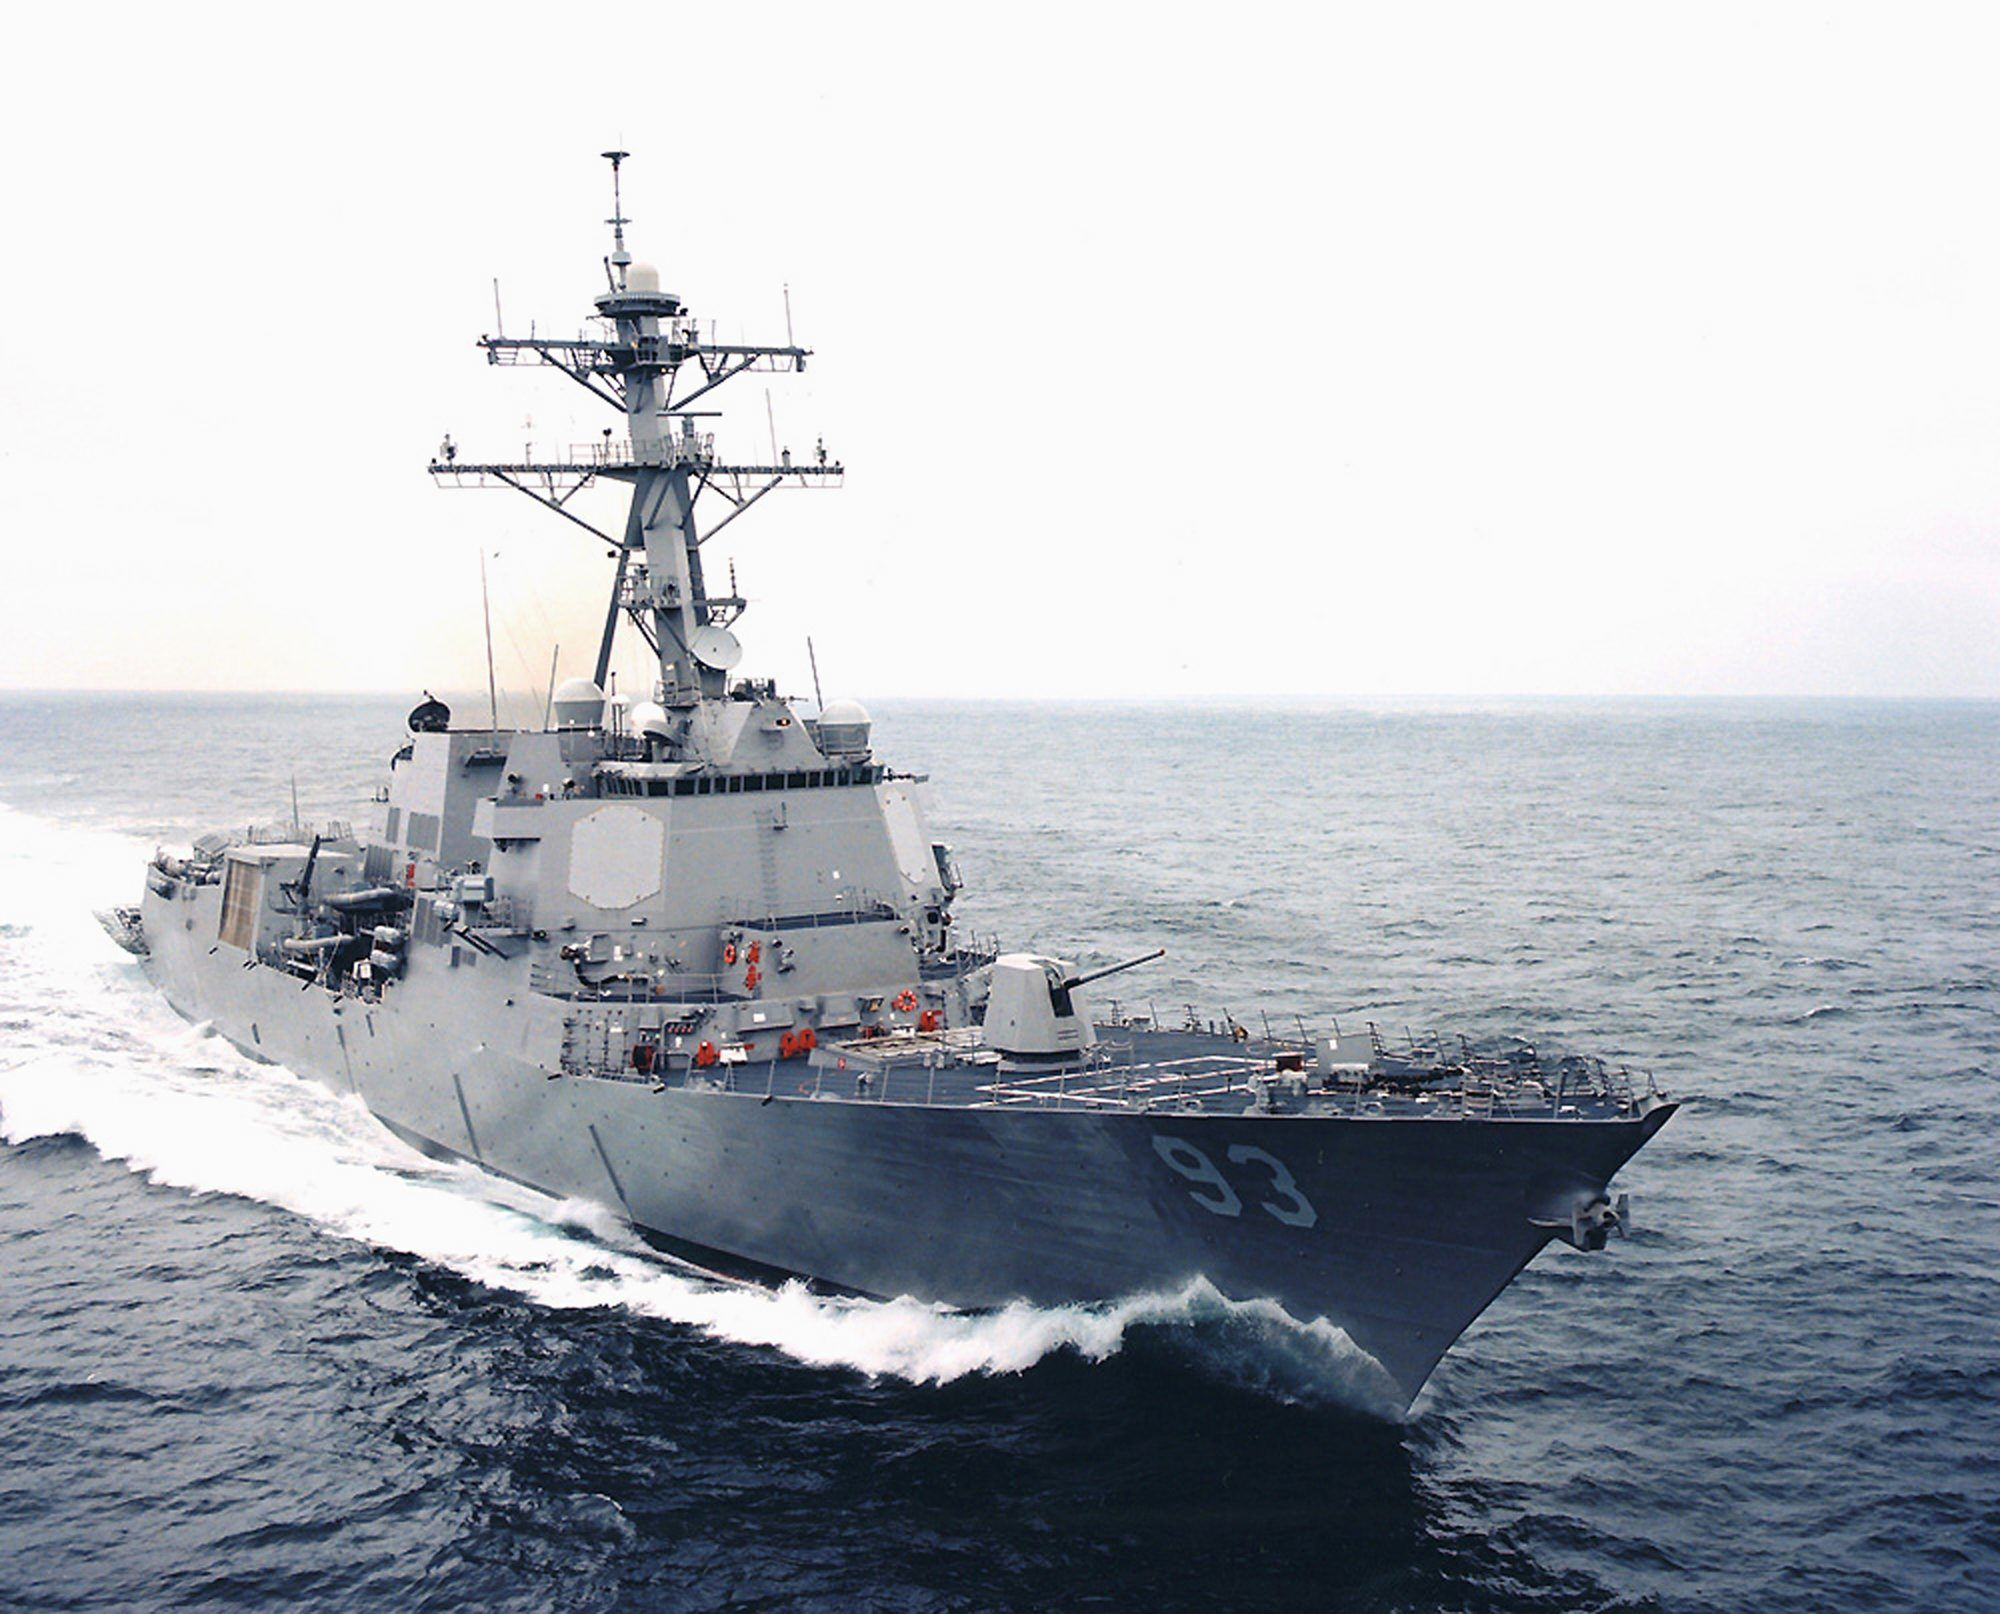 attacking American naval ships in the Indian Ocean, Xinhua reported